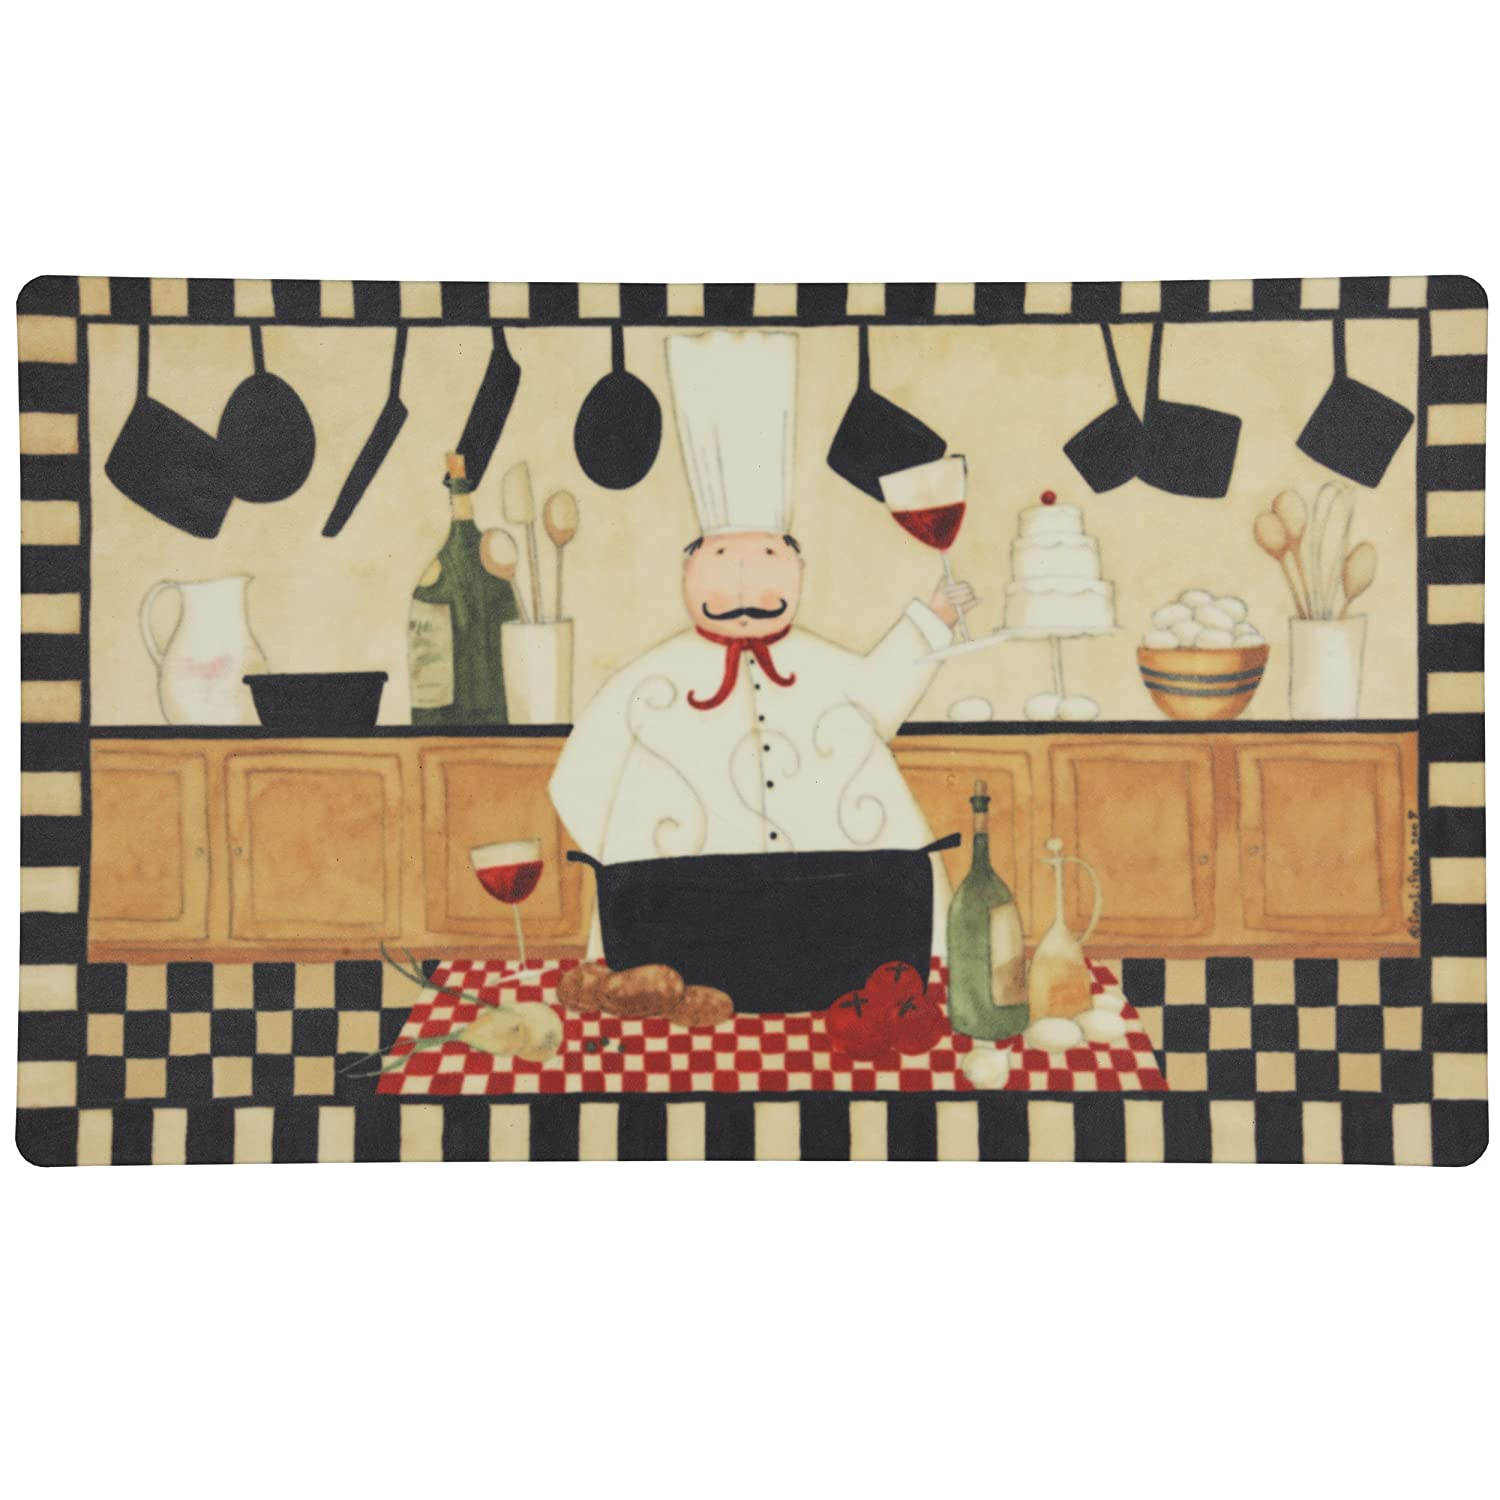 Fat Chef Kitchen Accessories: Fat Chef Italian/French Kitchen Decor : Kitchen Chef 18